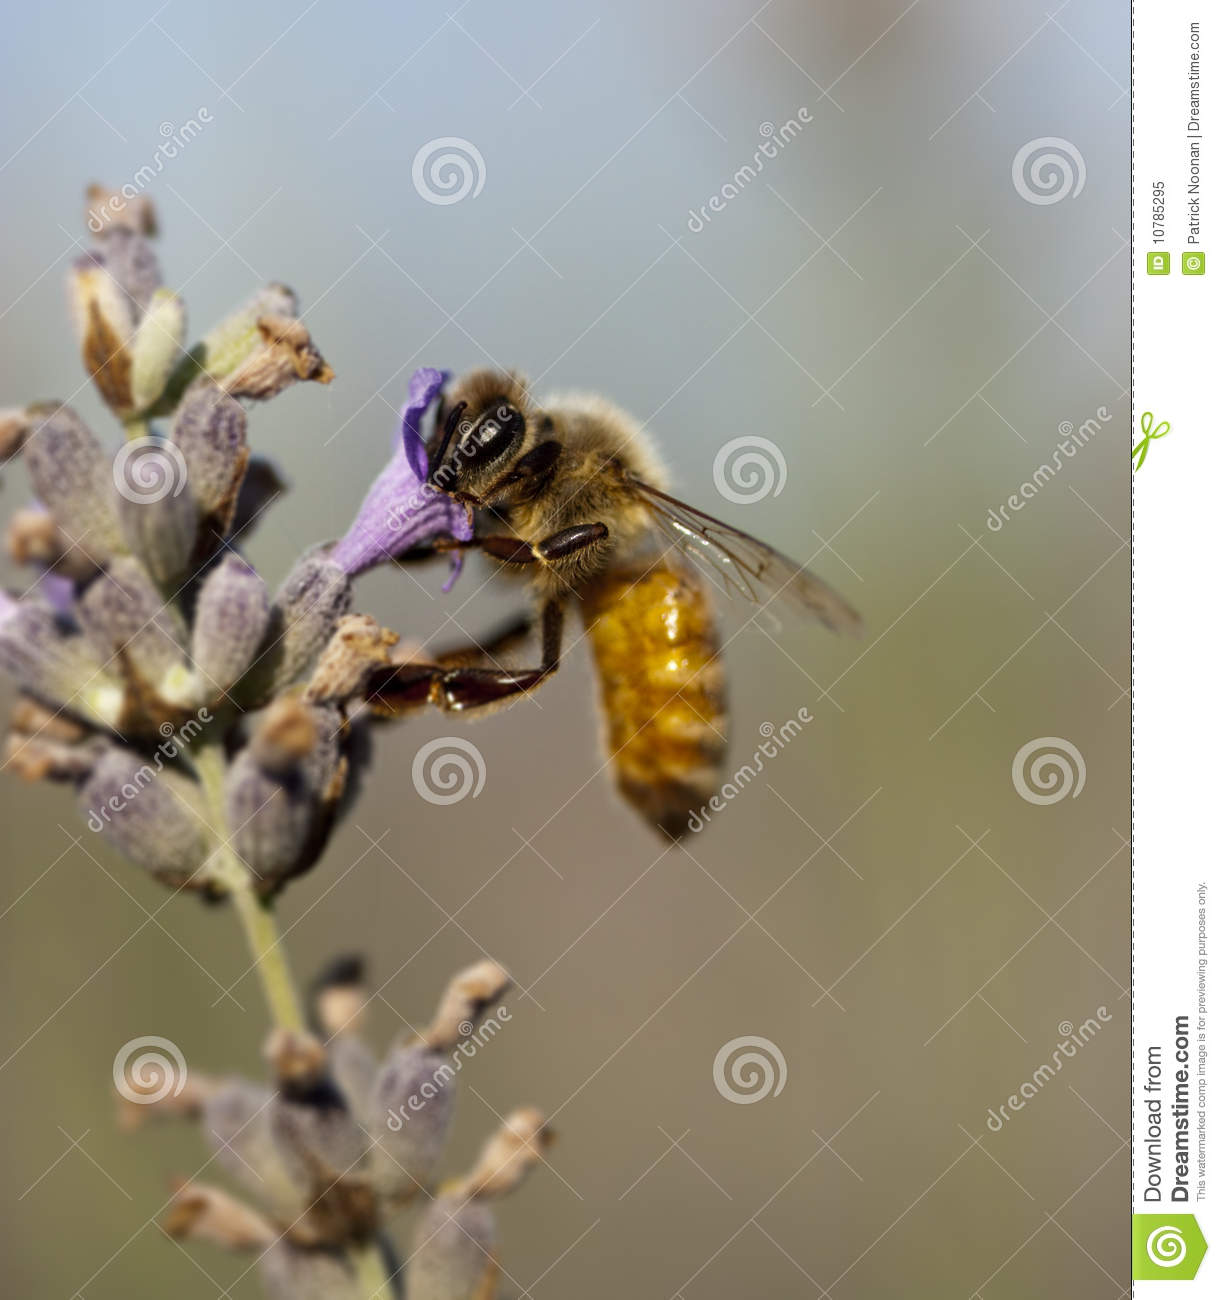 A Bee on a Lavender Plant